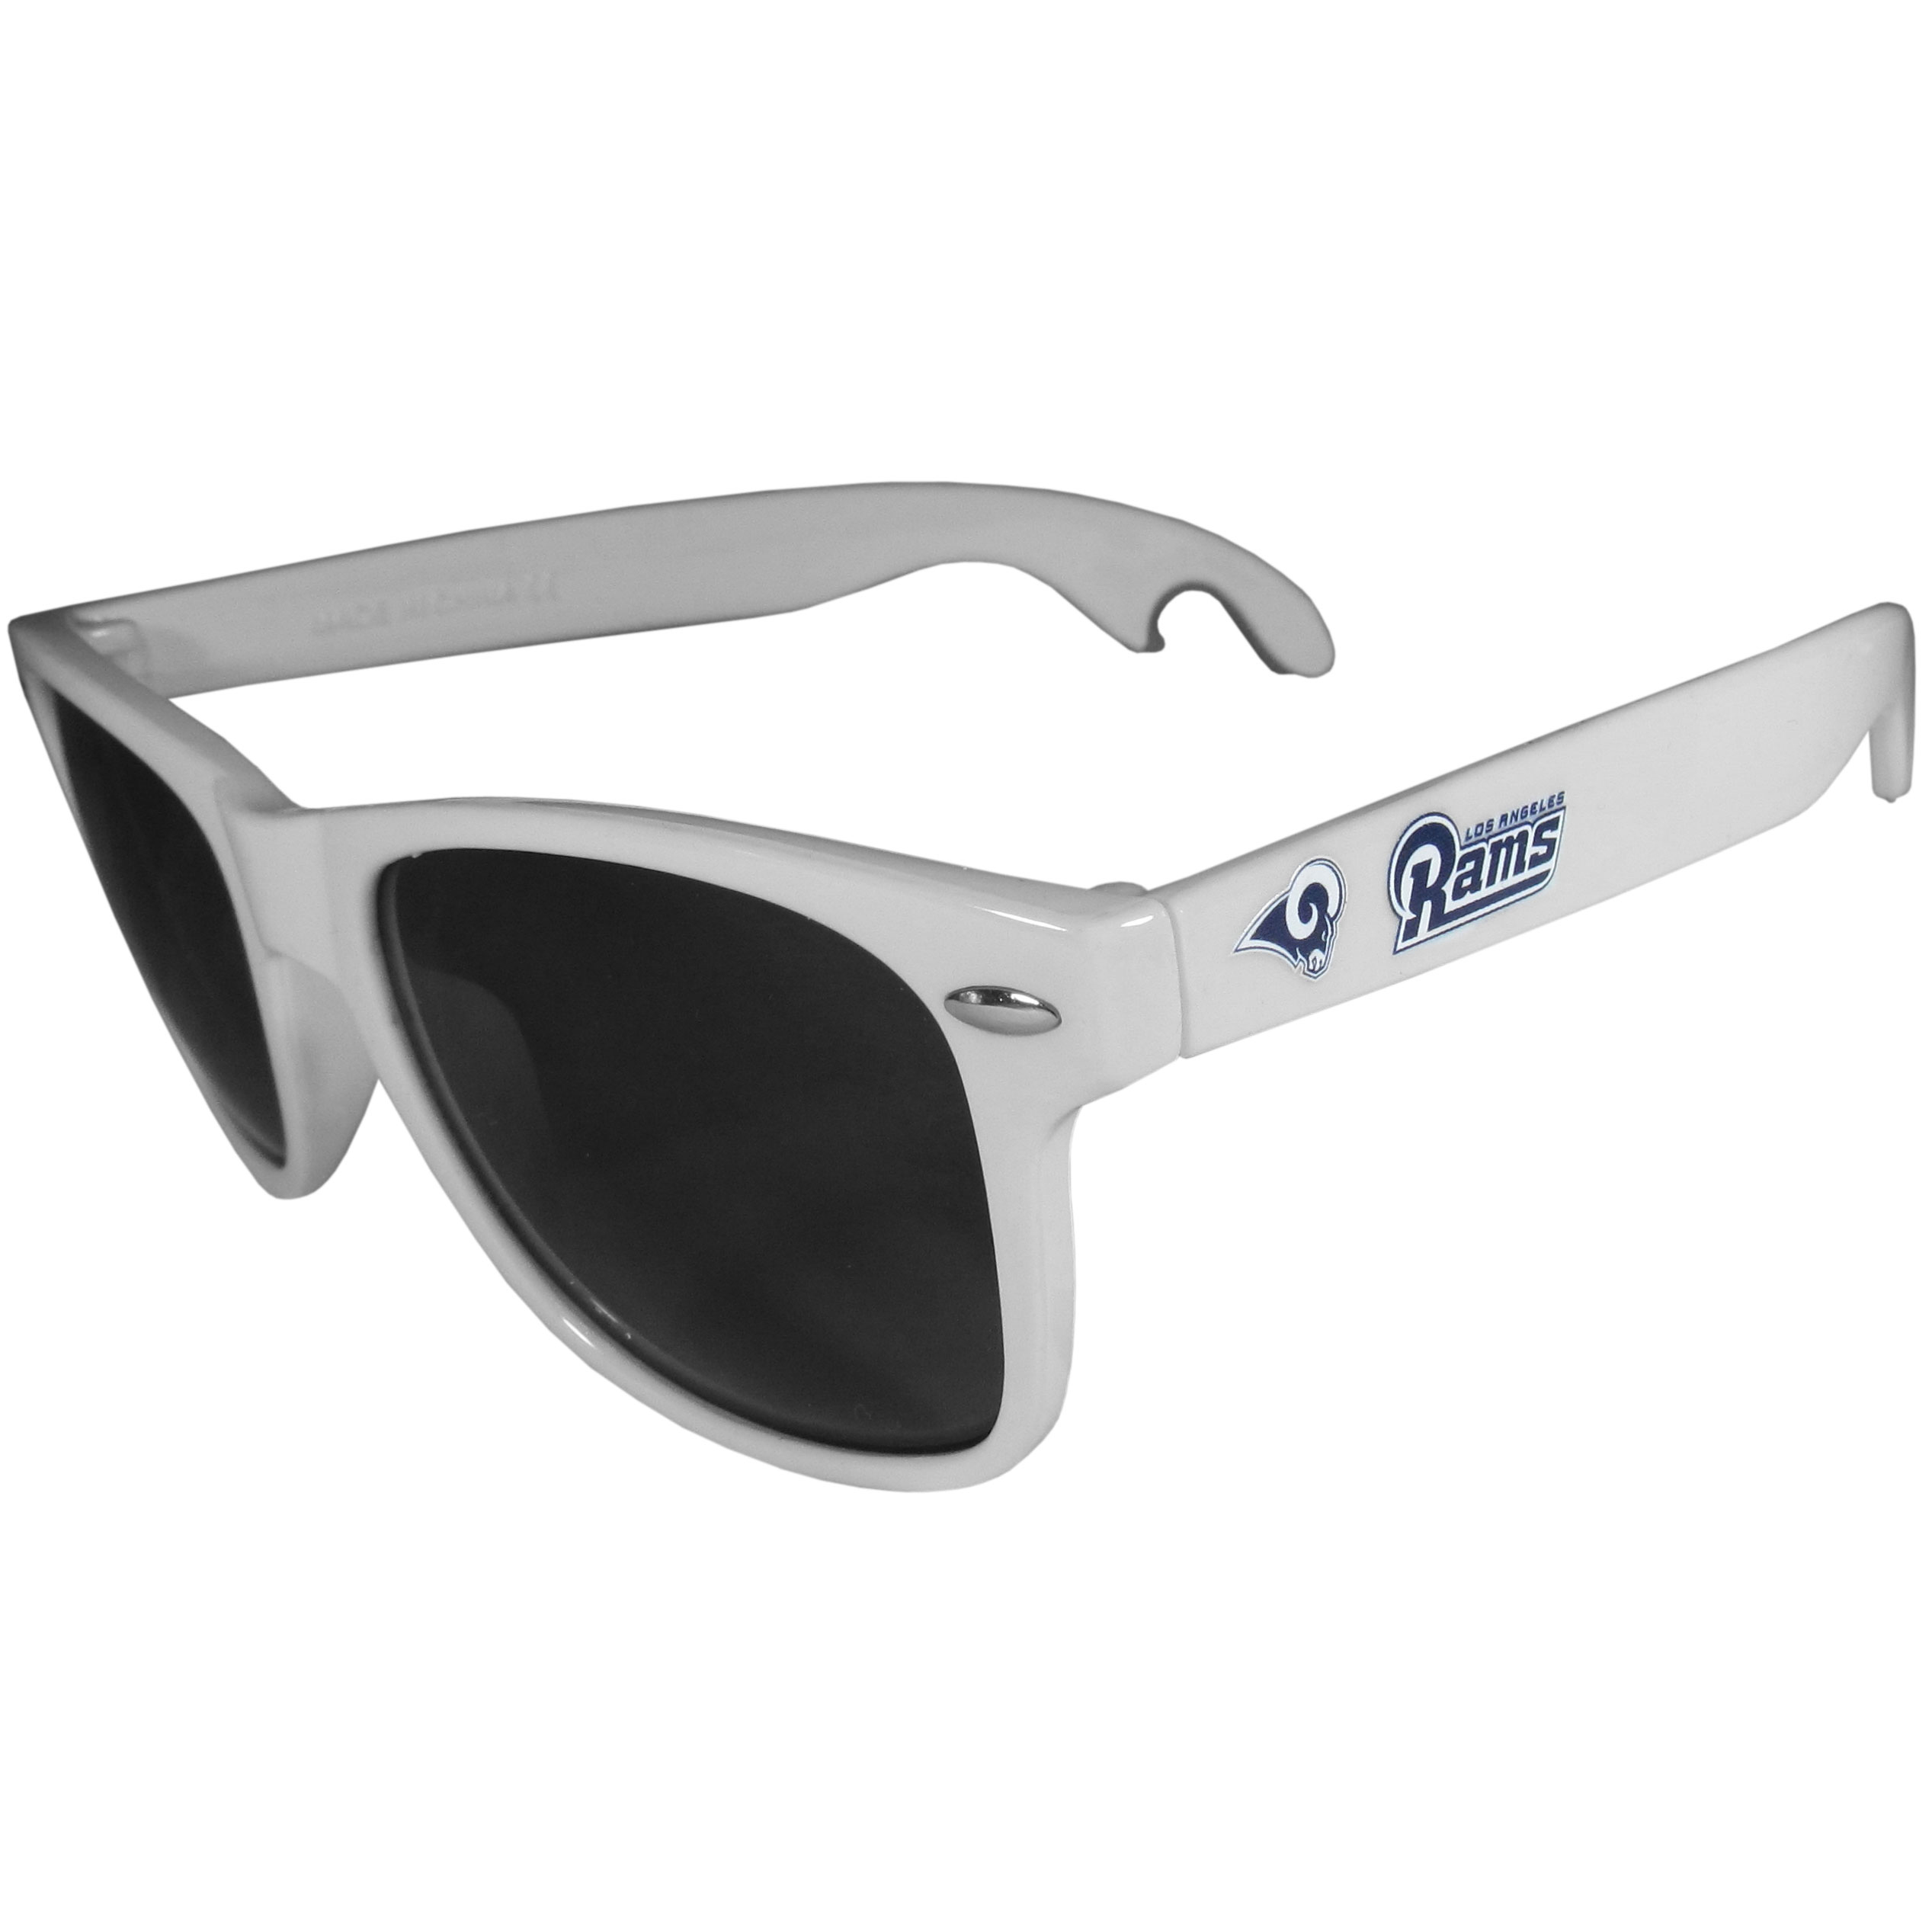 Los Angeles Rams Beachfarer Bottle Opener Sunglasses, White - Seriously, these sunglasses open bottles! Keep the party going with these amazing Los Angeles Rams bottle opener sunglasses. The stylish retro frames feature team designs on the arms and functional bottle openers on the end of the arms. Whether you are at the beach or having a backyard BBQ on game day, these shades will keep your eyes protected with 100% UVA/UVB protection and keep you hydrated with the handy bottle opener arms.